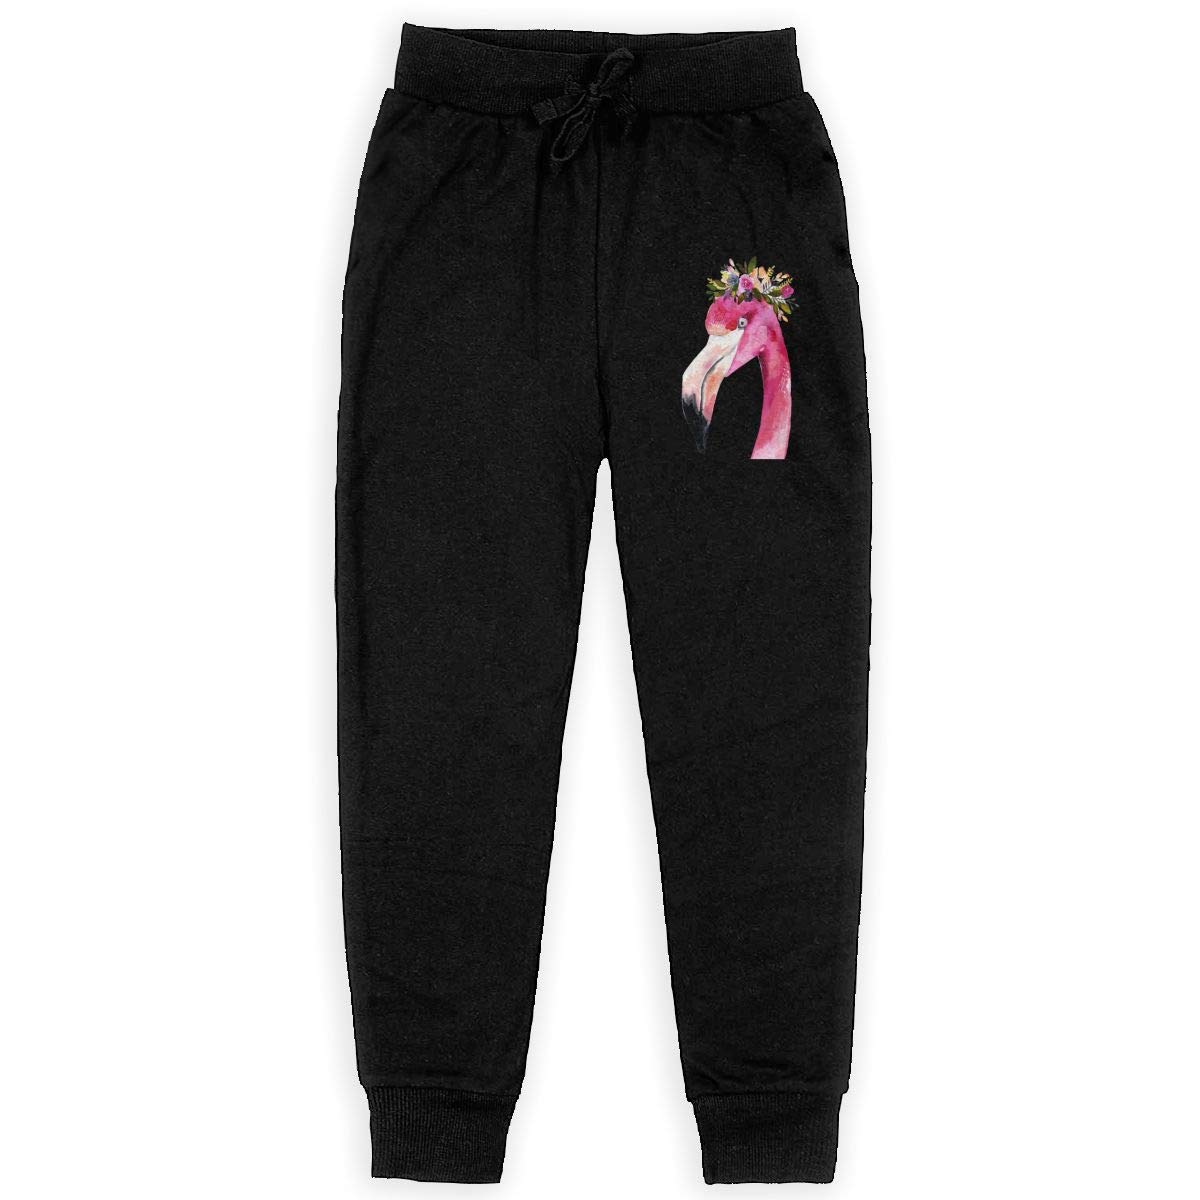 Pink Bird Boys Athletic Smart Fleece Pant Youth Soft and Cozy Sweatpants